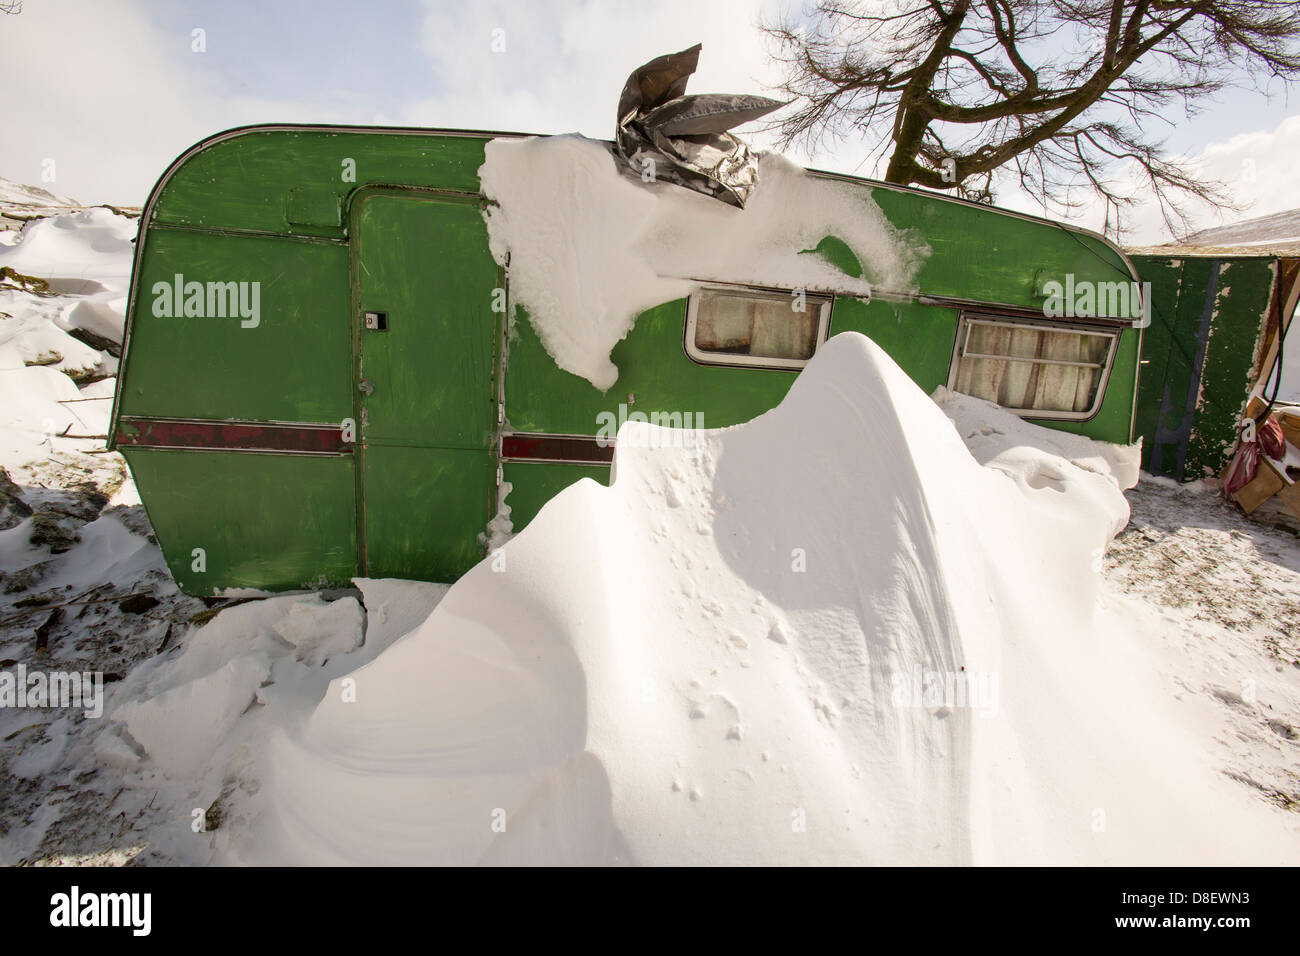 A caravan snowed in by large snow drifts during the extreme weather event of late March 2013 - Stock Image